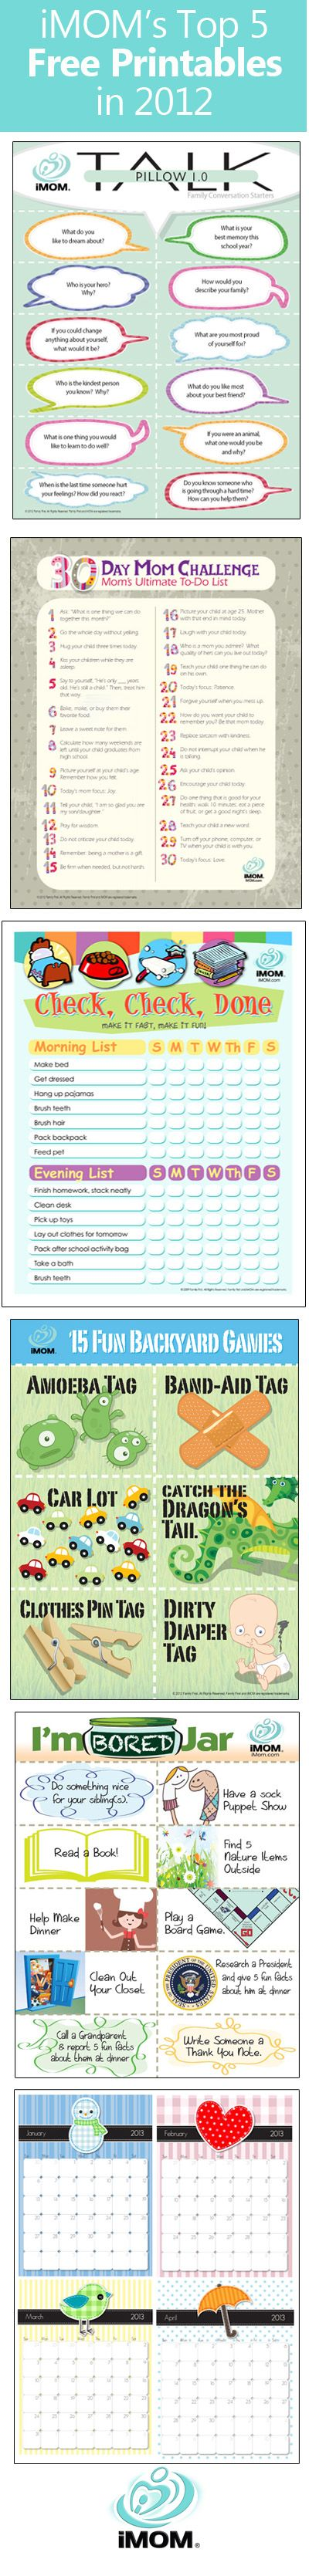 LOVE THIS! Love this site, Love these printables. Can't wait to use them!